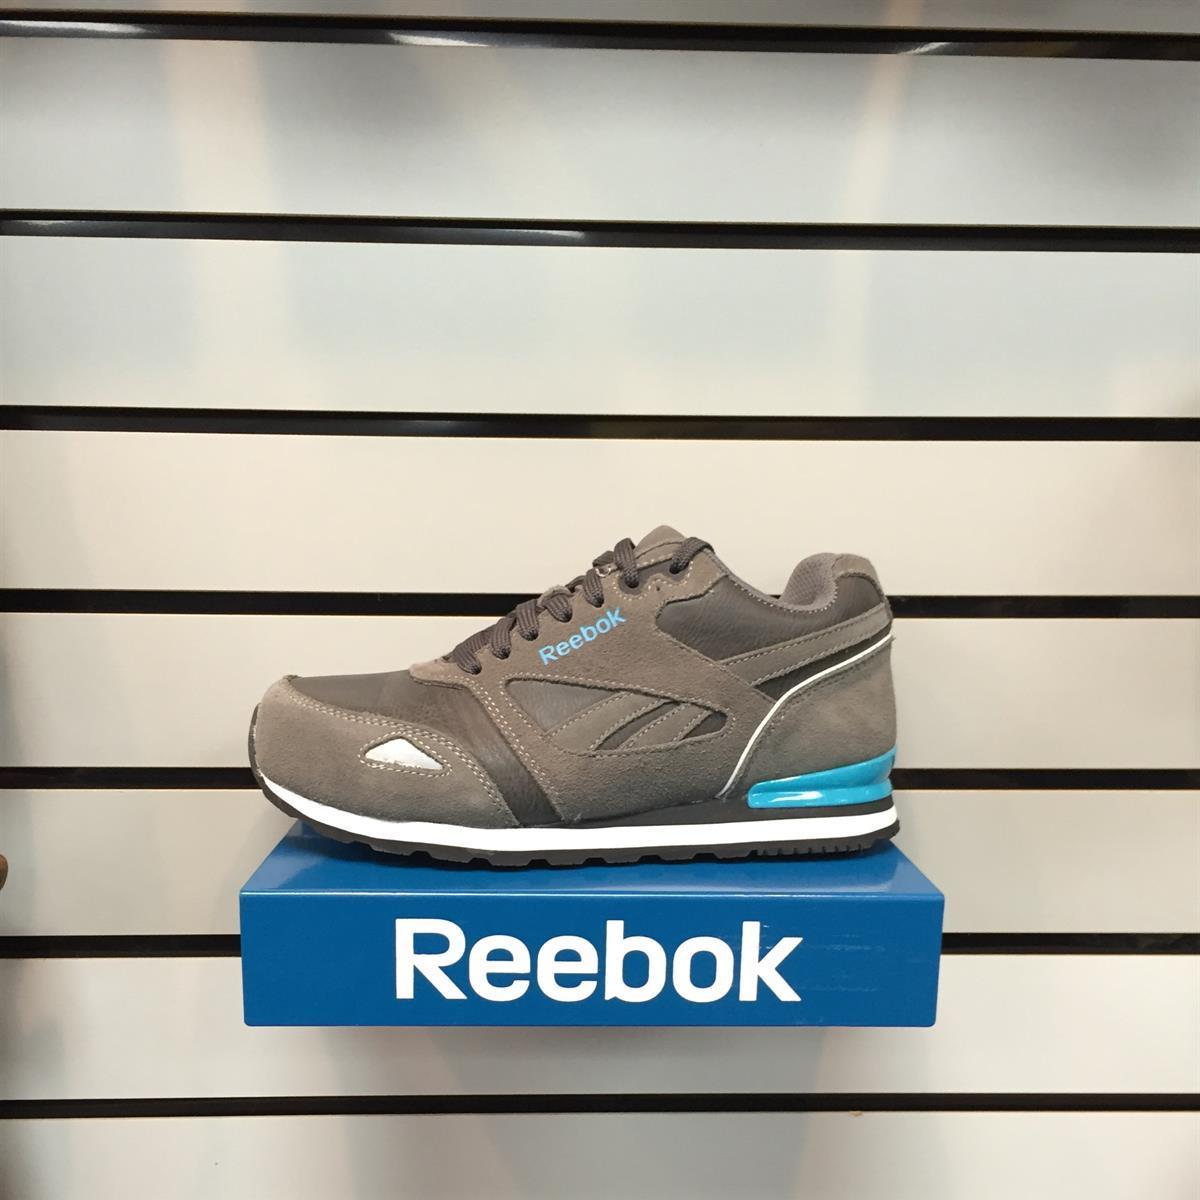 Reebok 977 Comp toe womens